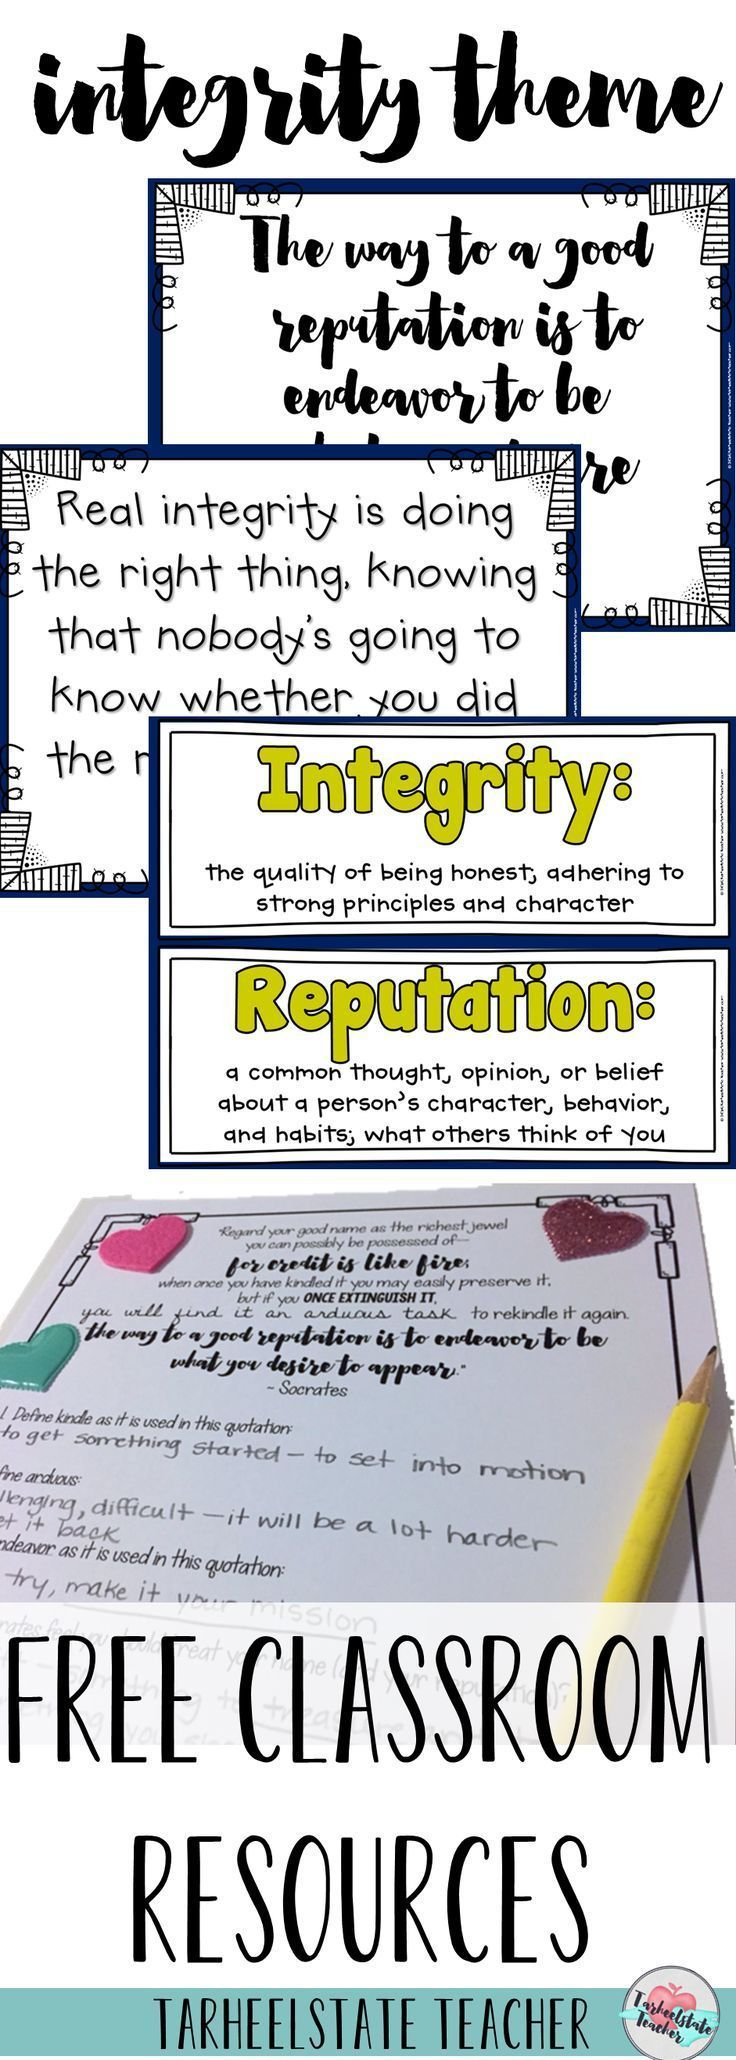 "Click for Free morning meeting or themes in literature activities and lesson ideas for teaching your students about integrity, honesty, and protecting their reputation through quotes, quotations, read alouds/picture books, and journal pages/prompts. This is character education at it's best through reading, discussing, self reflection, and quotation analysis. ""The way to a good reputation is to endeavor to be what we desire to appear."""